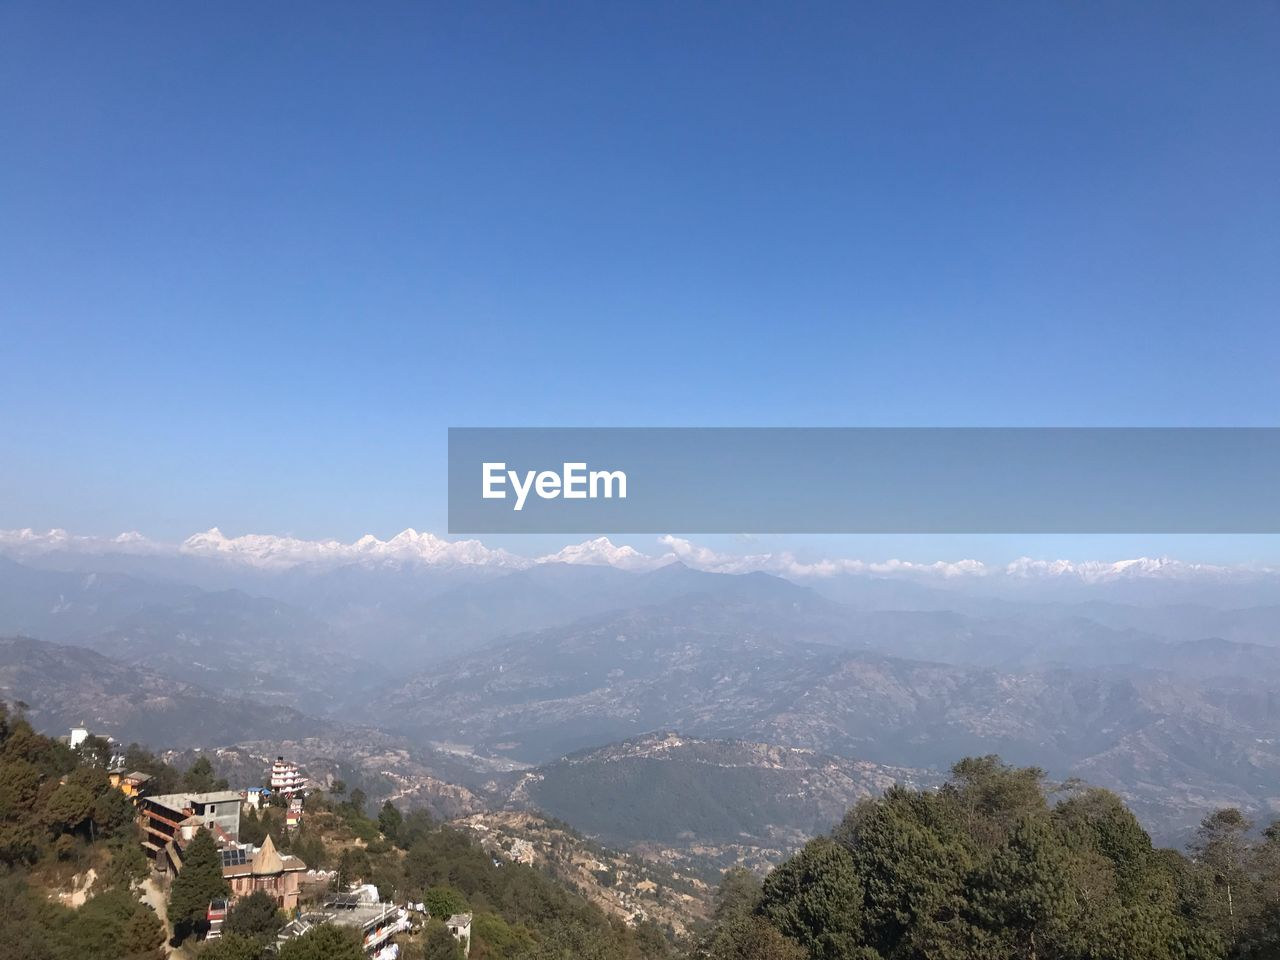 mountain, sky, scenics - nature, beauty in nature, building exterior, nature, copy space, tranquil scene, tree, day, tranquility, mountain range, architecture, plant, environment, blue, built structure, no people, landscape, outdoors, townscape